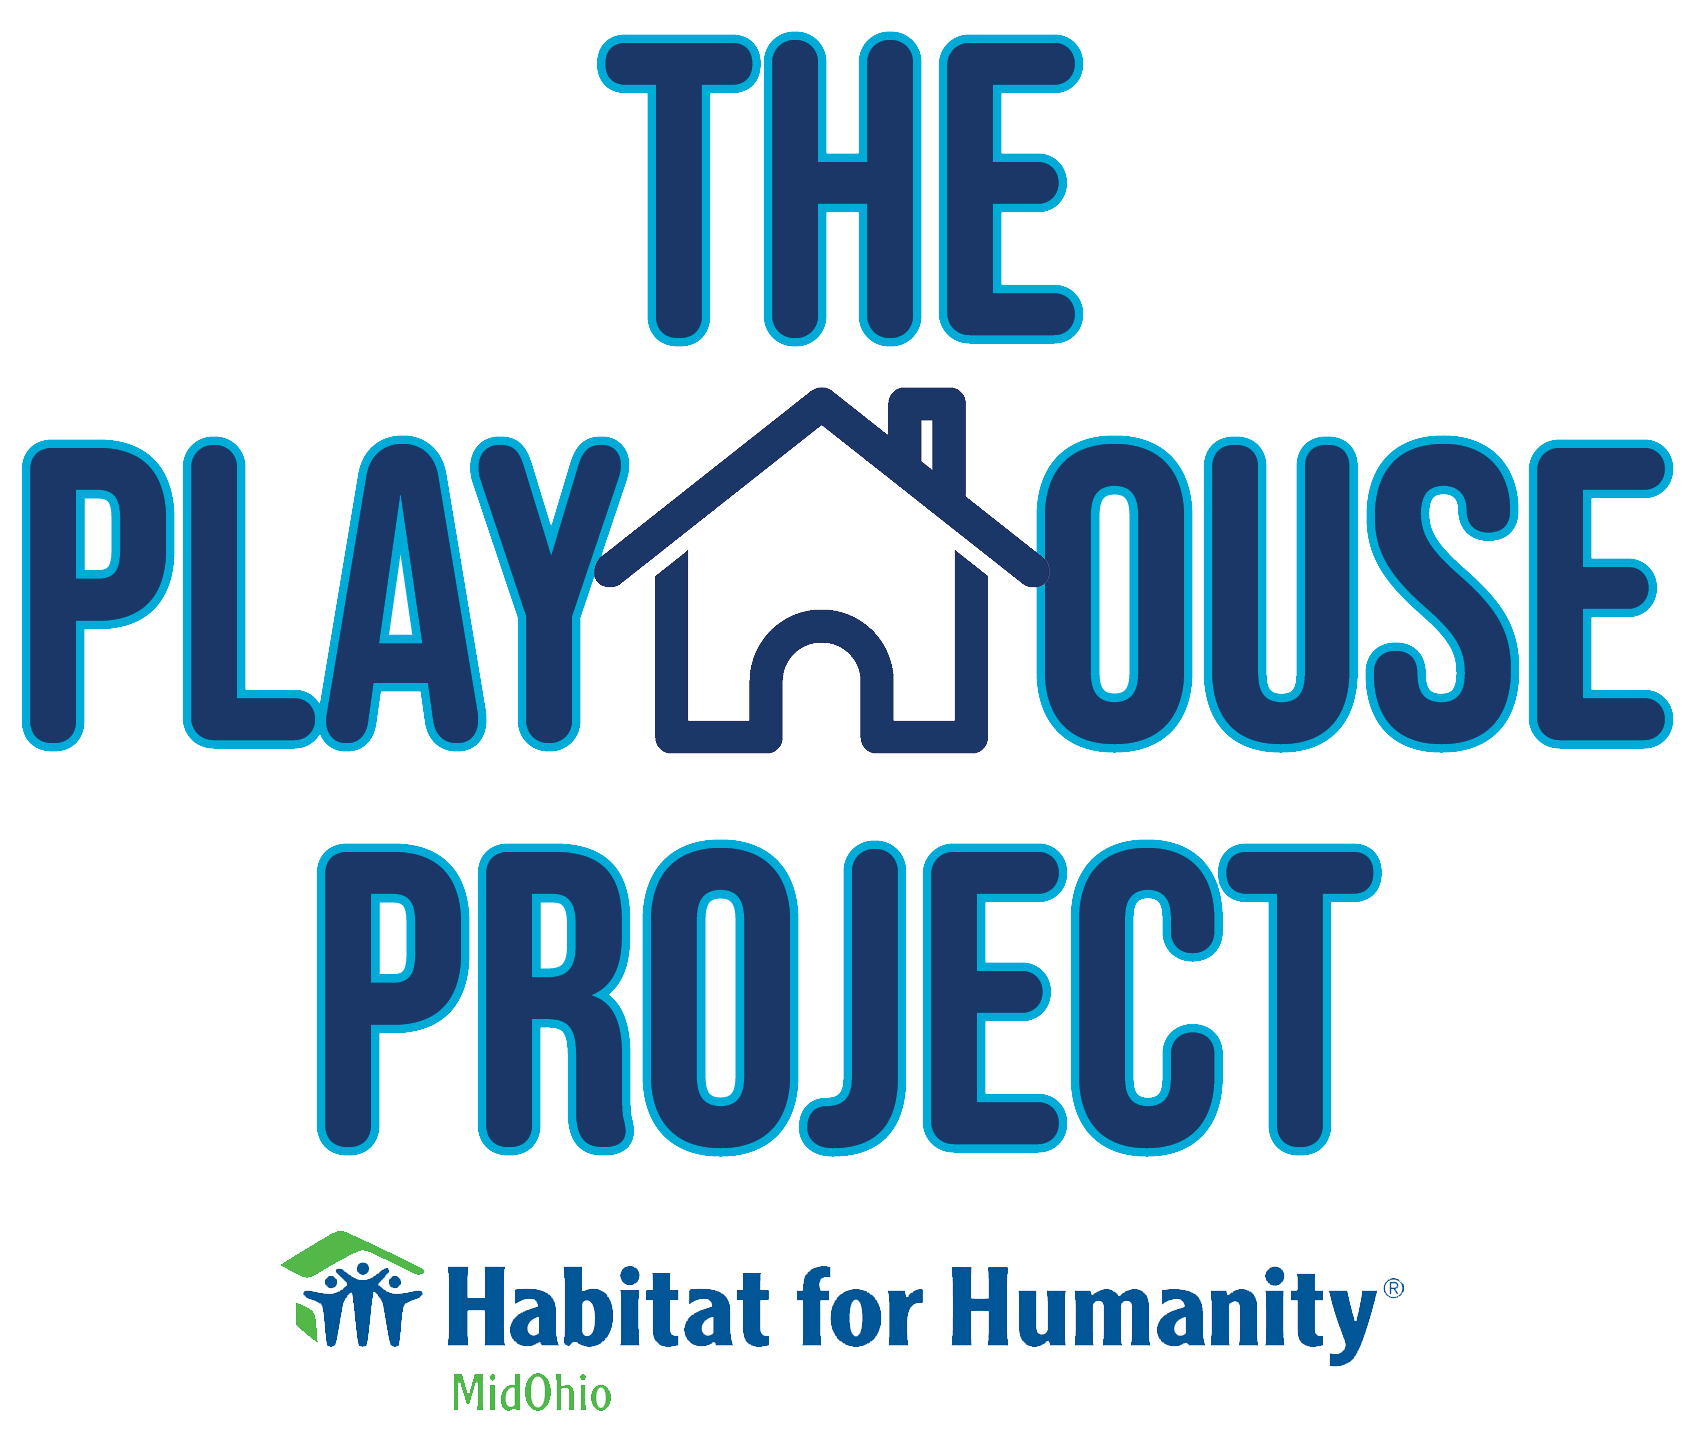 The Playhouse Project Blitz Build